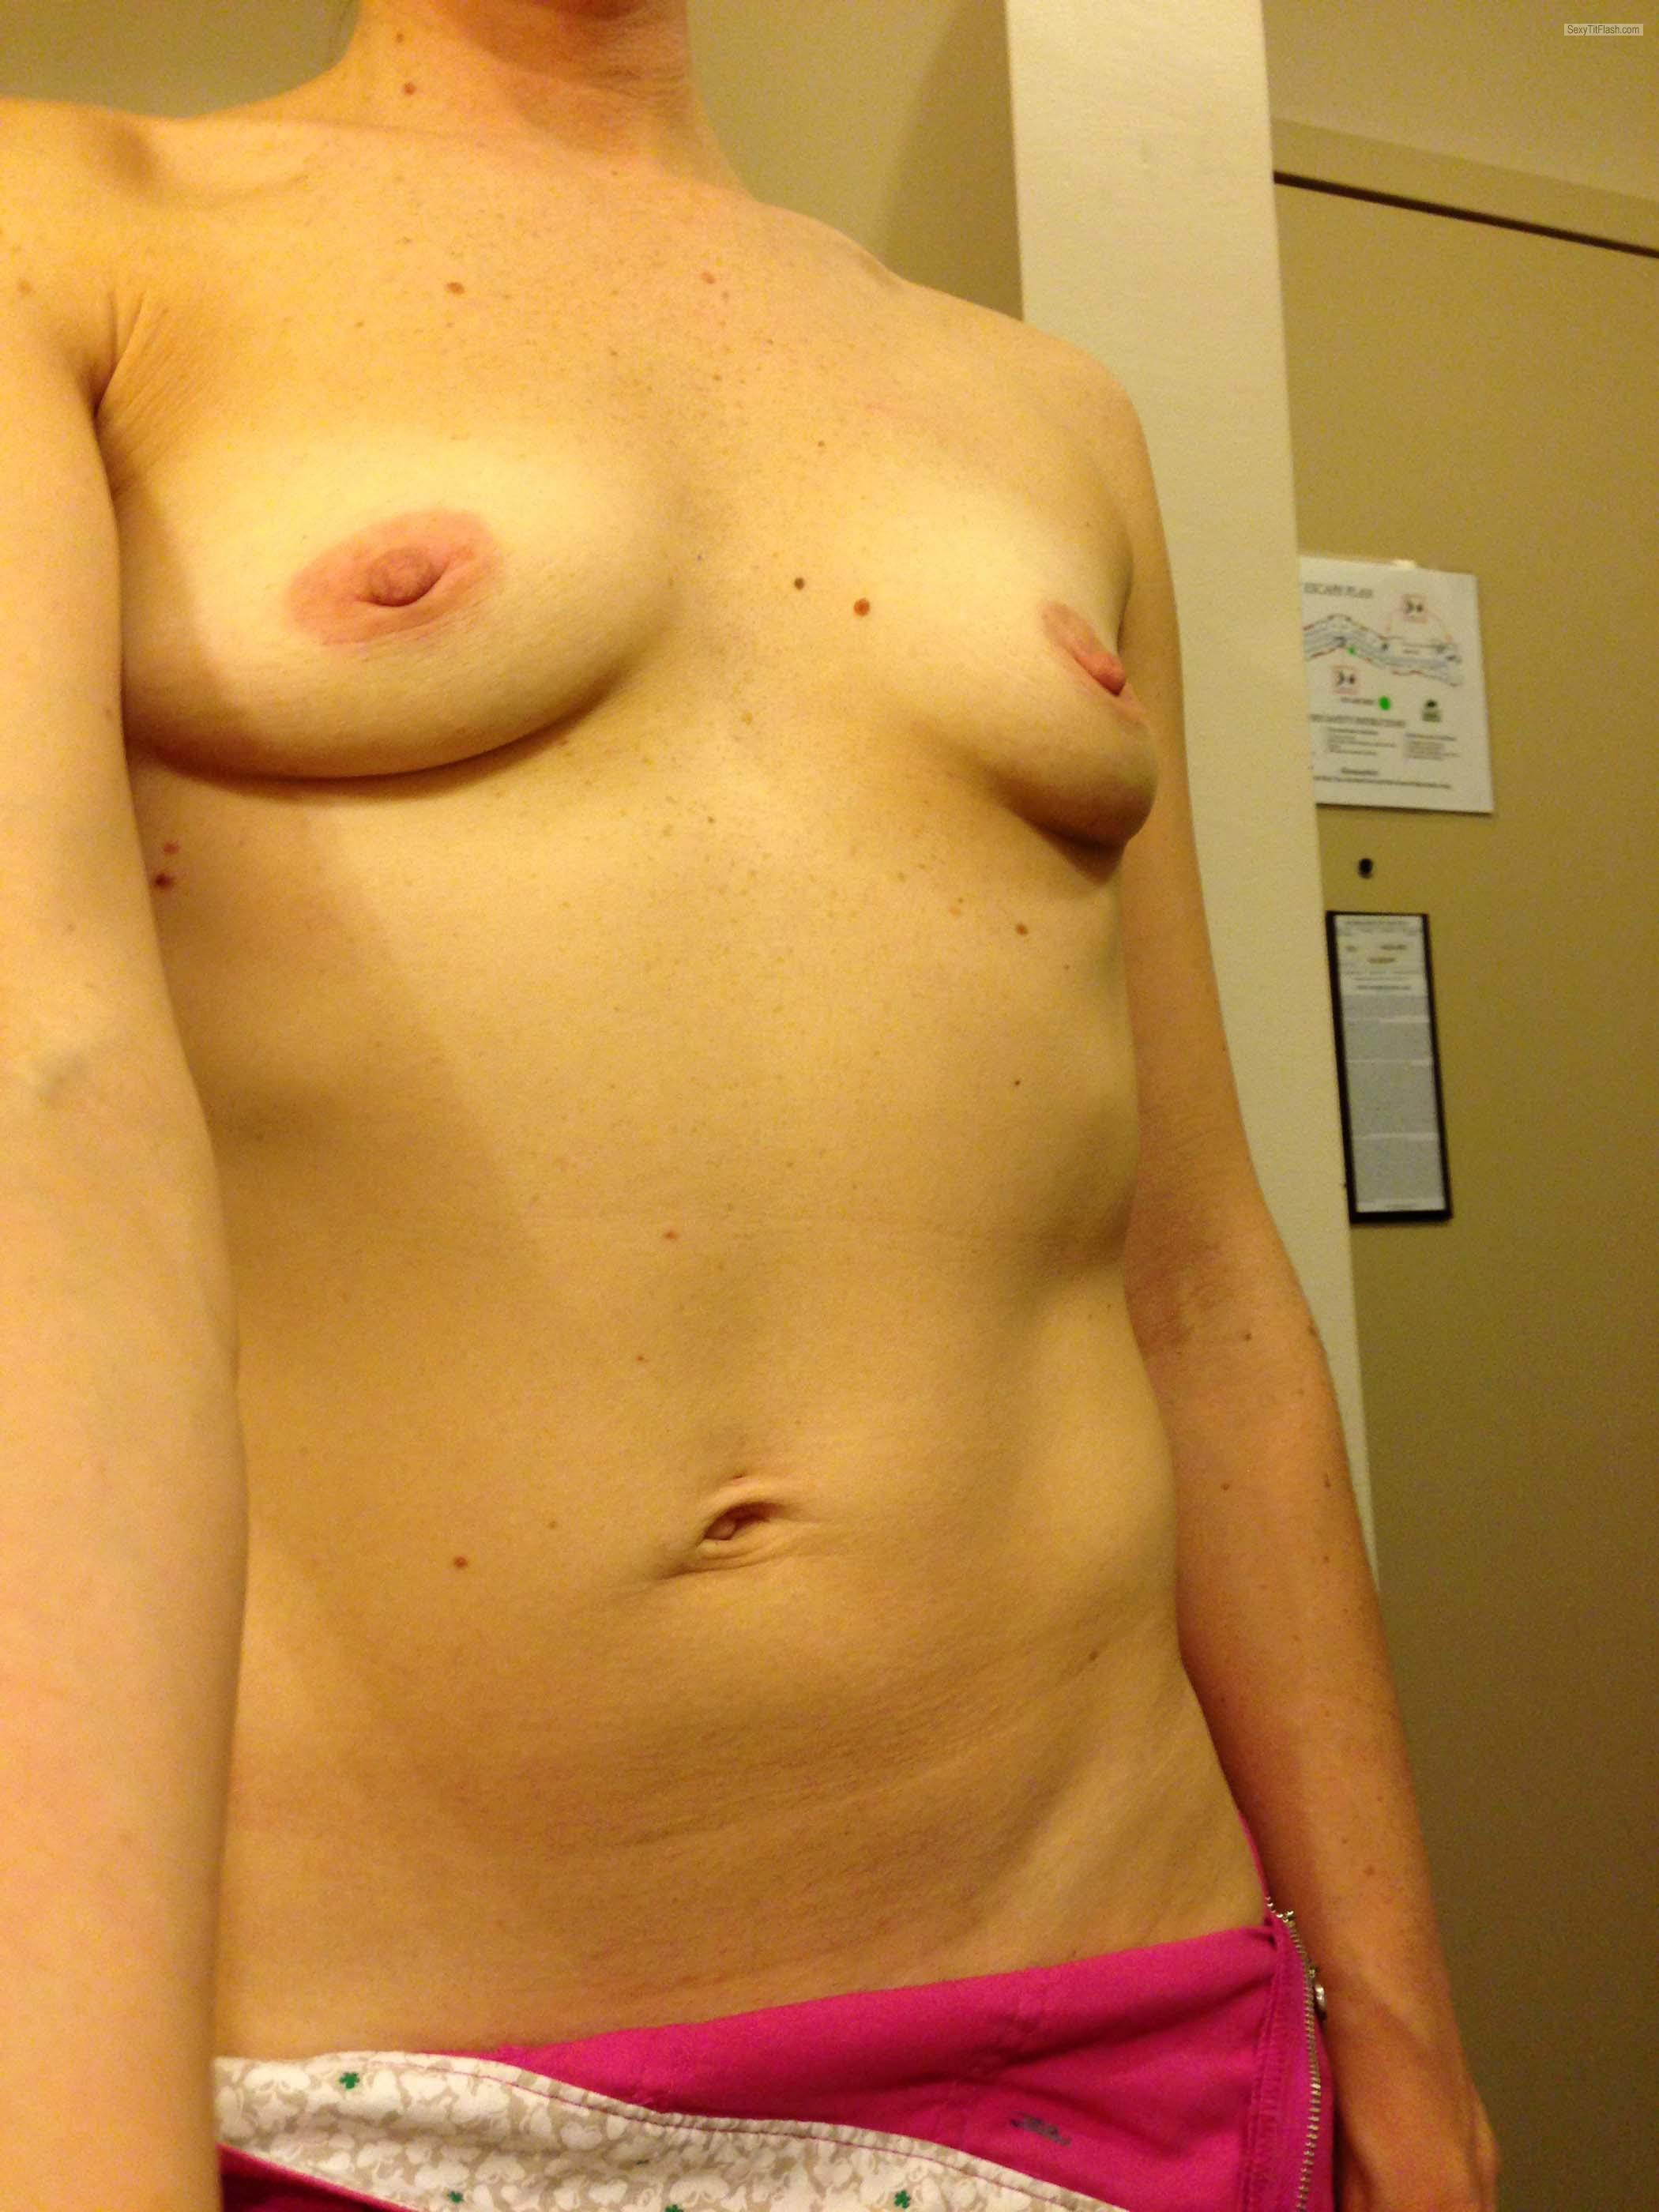 Tit Flash: My Small Tits (Selfie) - JuicyJ from United States